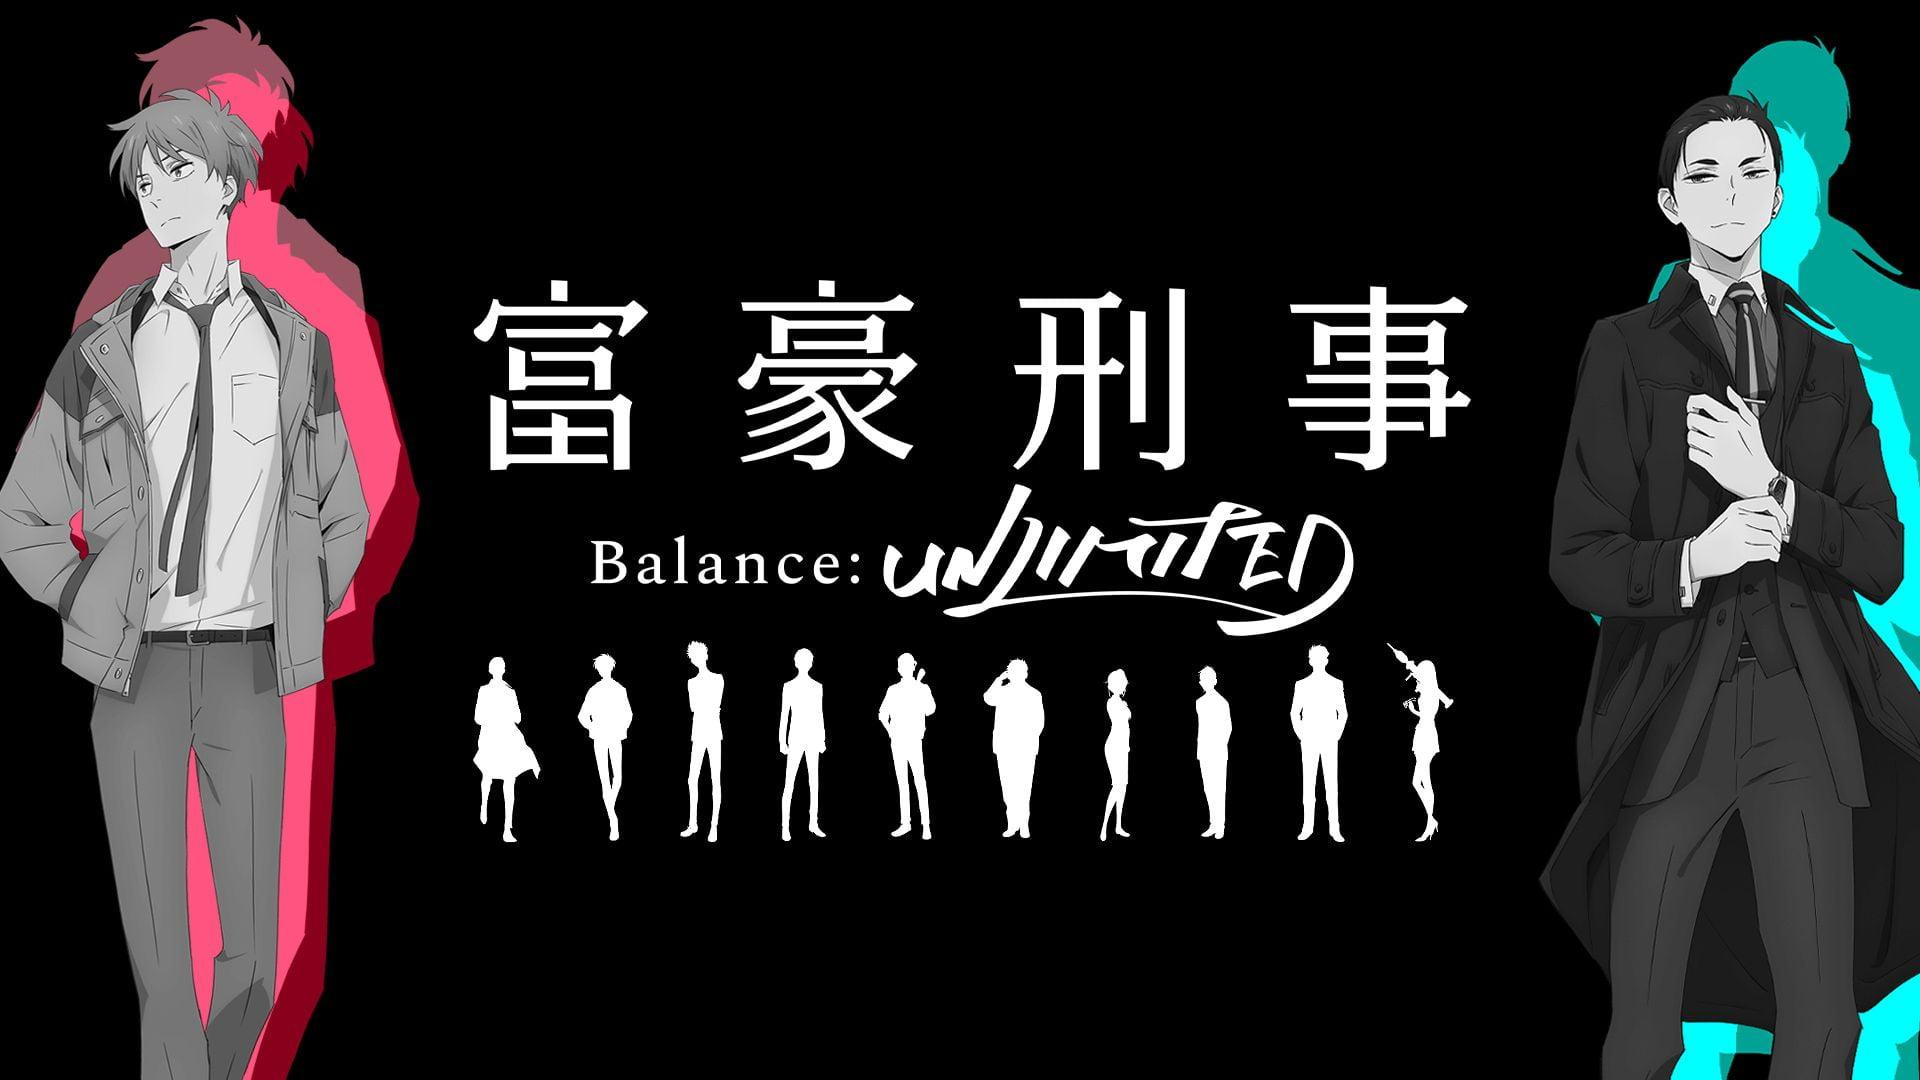 Millionaire Detective Balance: Unlimited Season 2[COMING SOON]